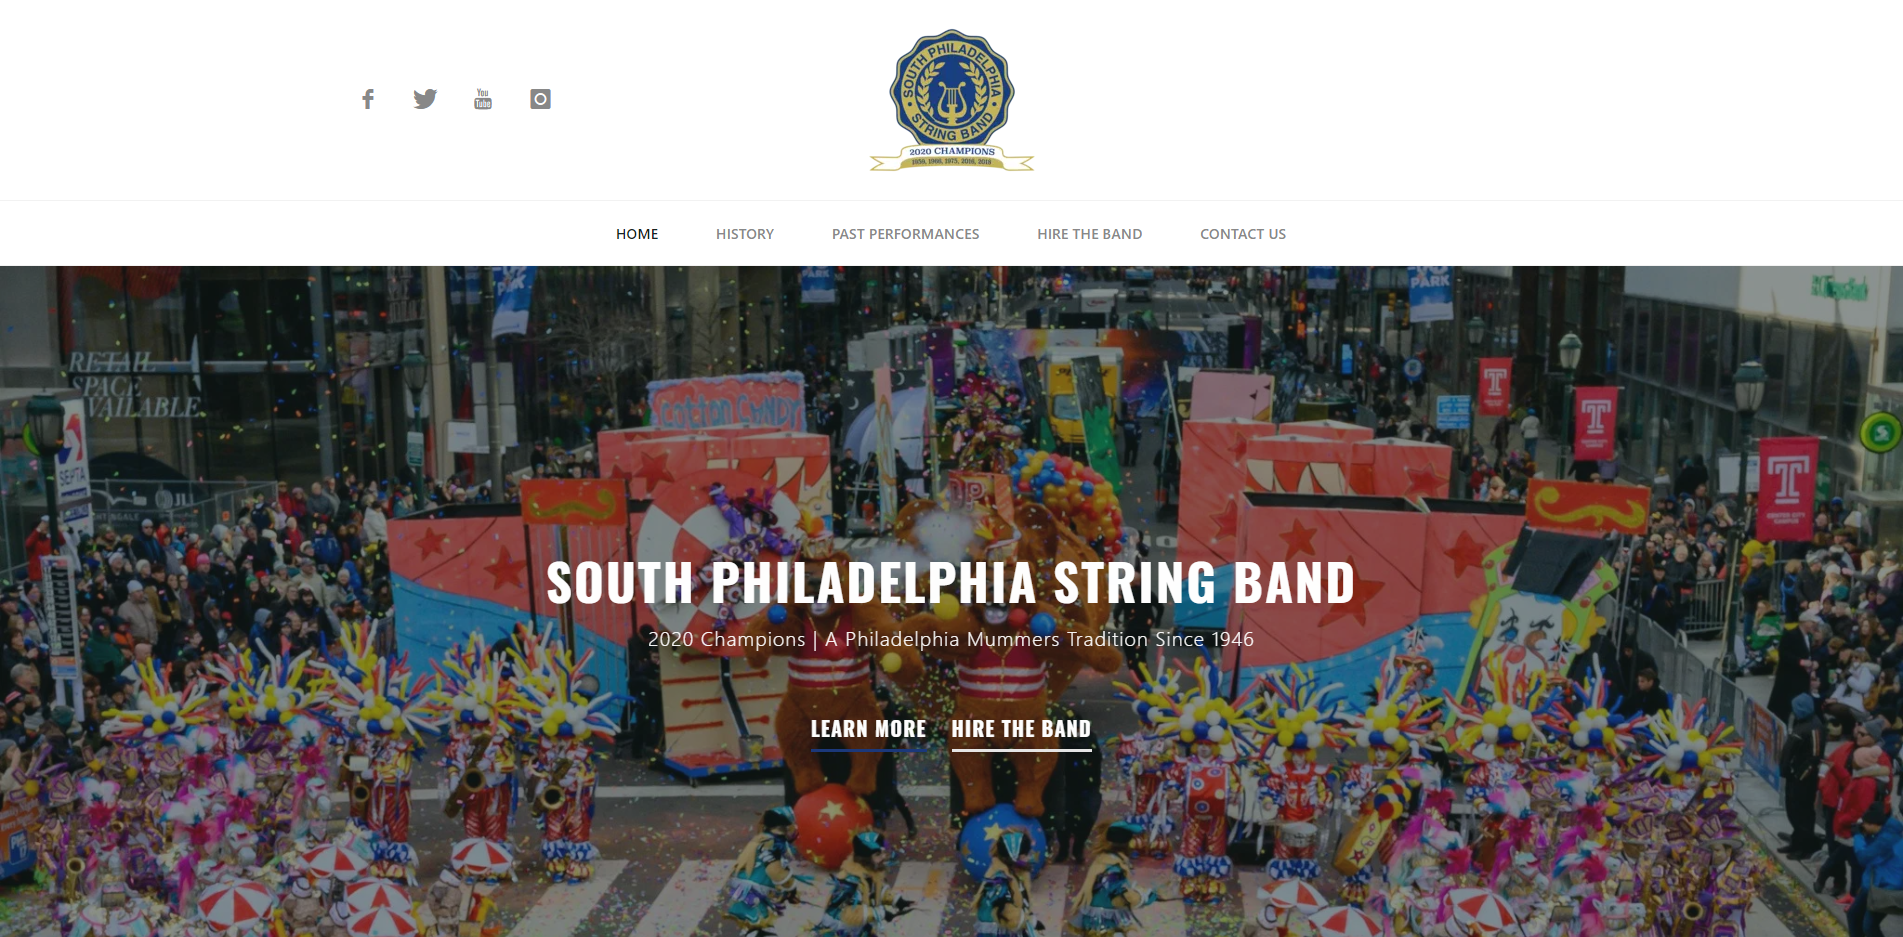 South Philadelphia String Band